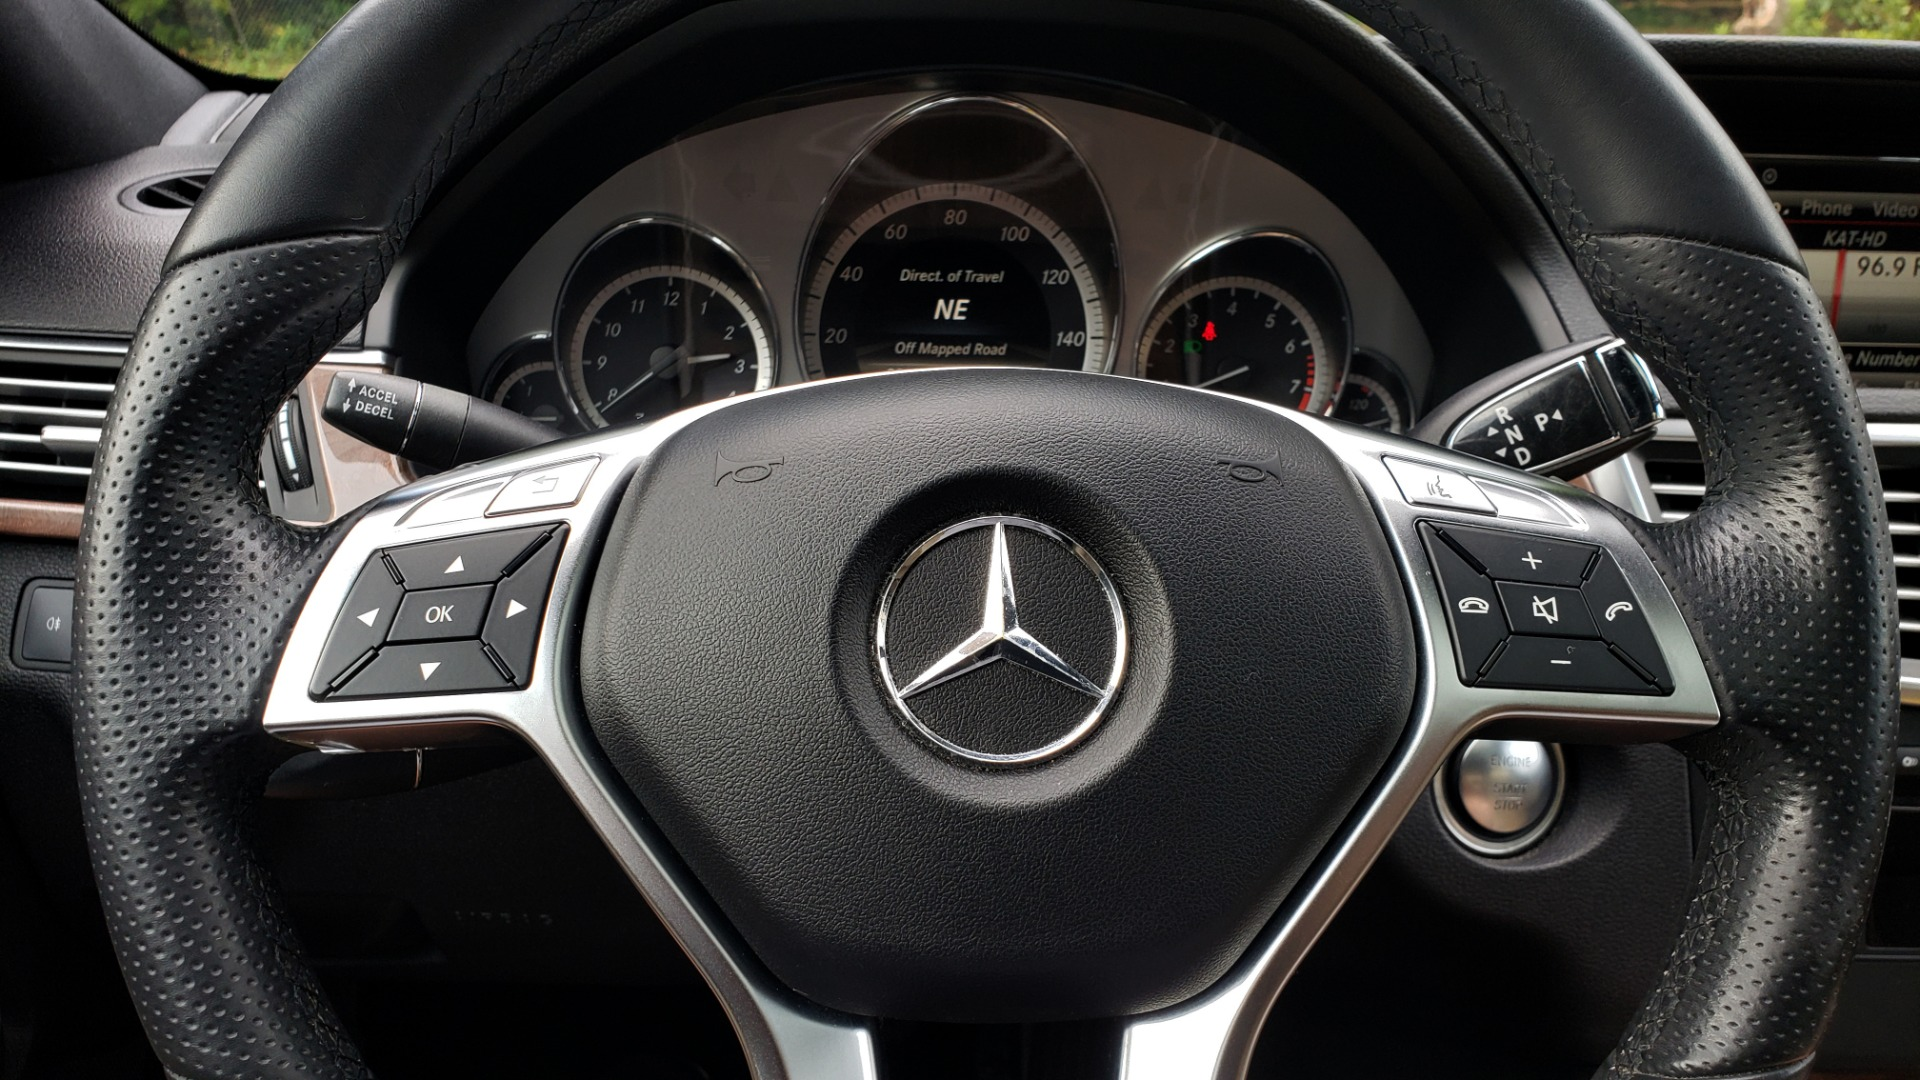 Used 2013 Mercedes-Benz E-CLASS E 350 SPORT / PREM PKG / NAV / SUNROOF / LANE TRACKING / BSA for sale $17,995 at Formula Imports in Charlotte NC 28227 40